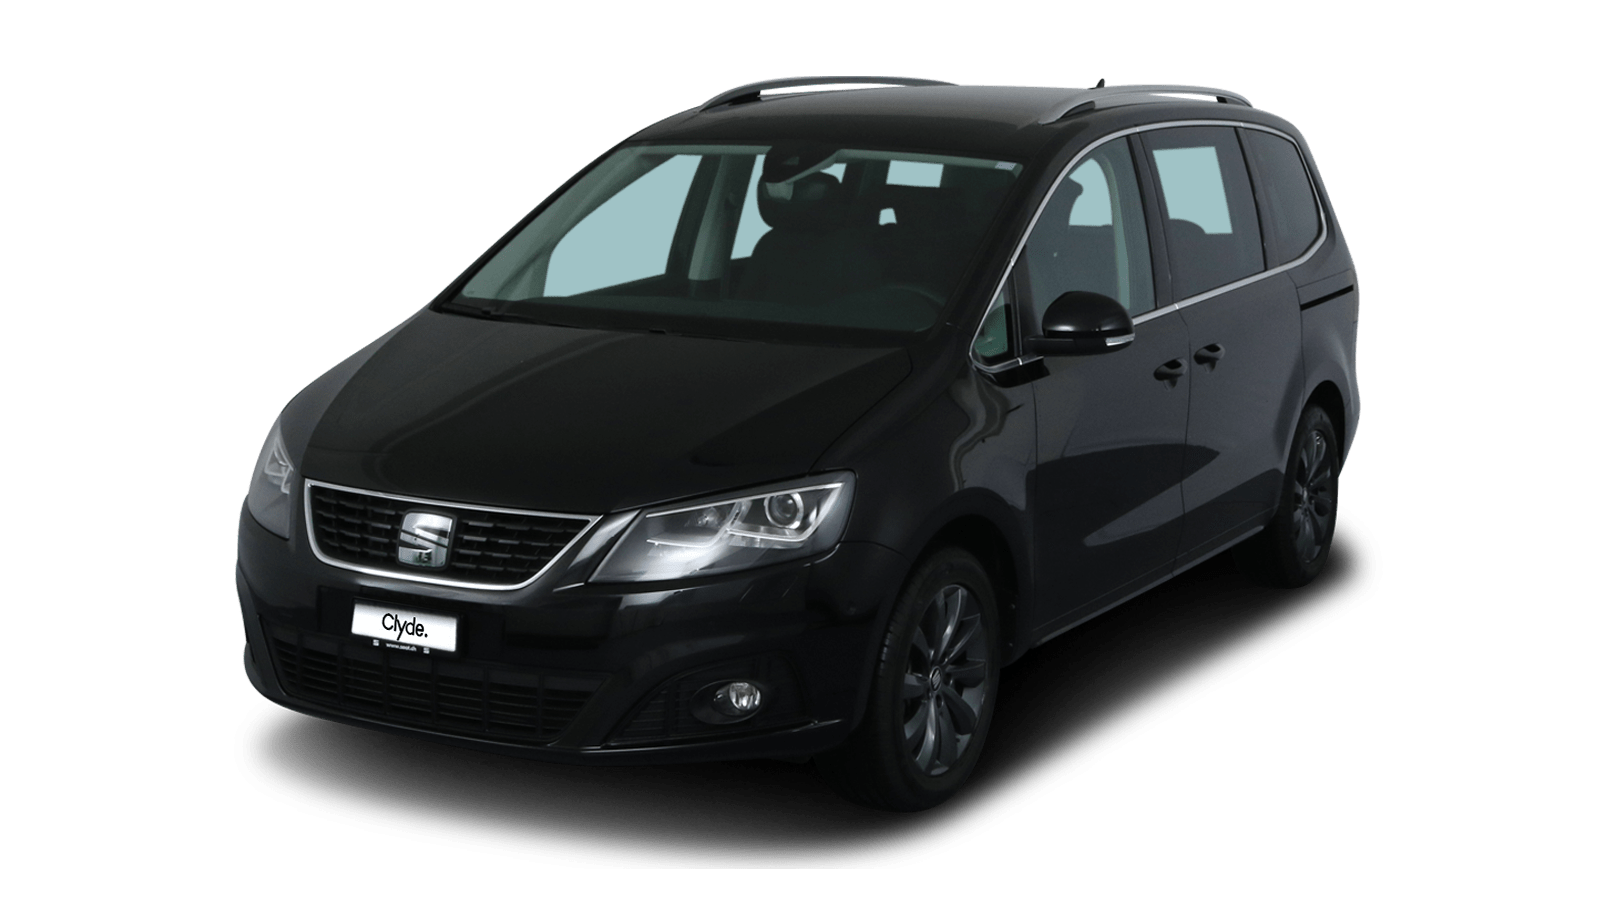 SEAT Alhambra Black front - Clyde car subscription